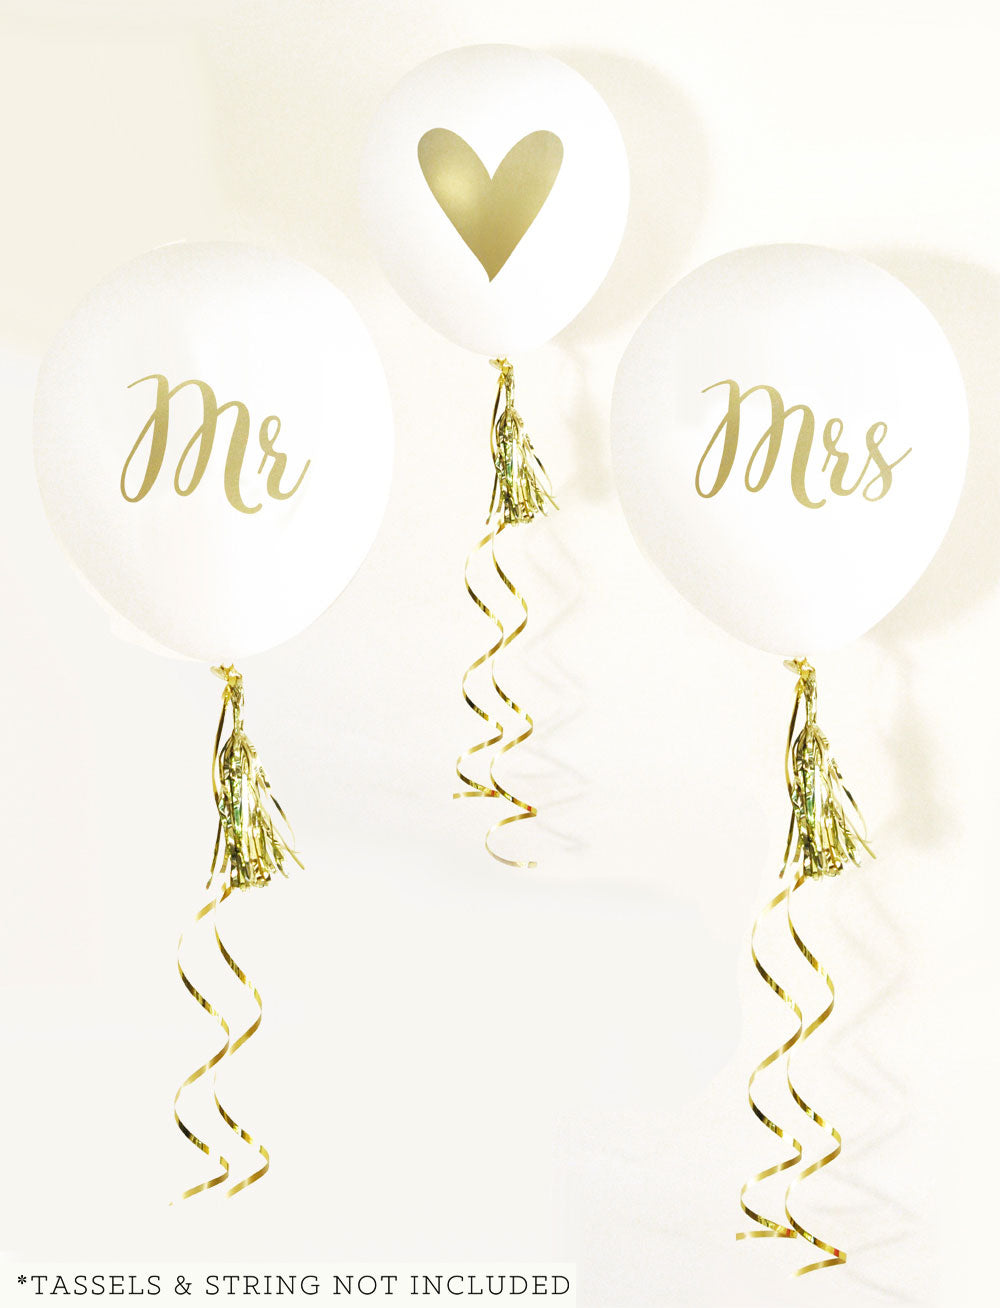 Mr and Mrs Party Balloons Set of 3 Gold Printed Wedding Balloons